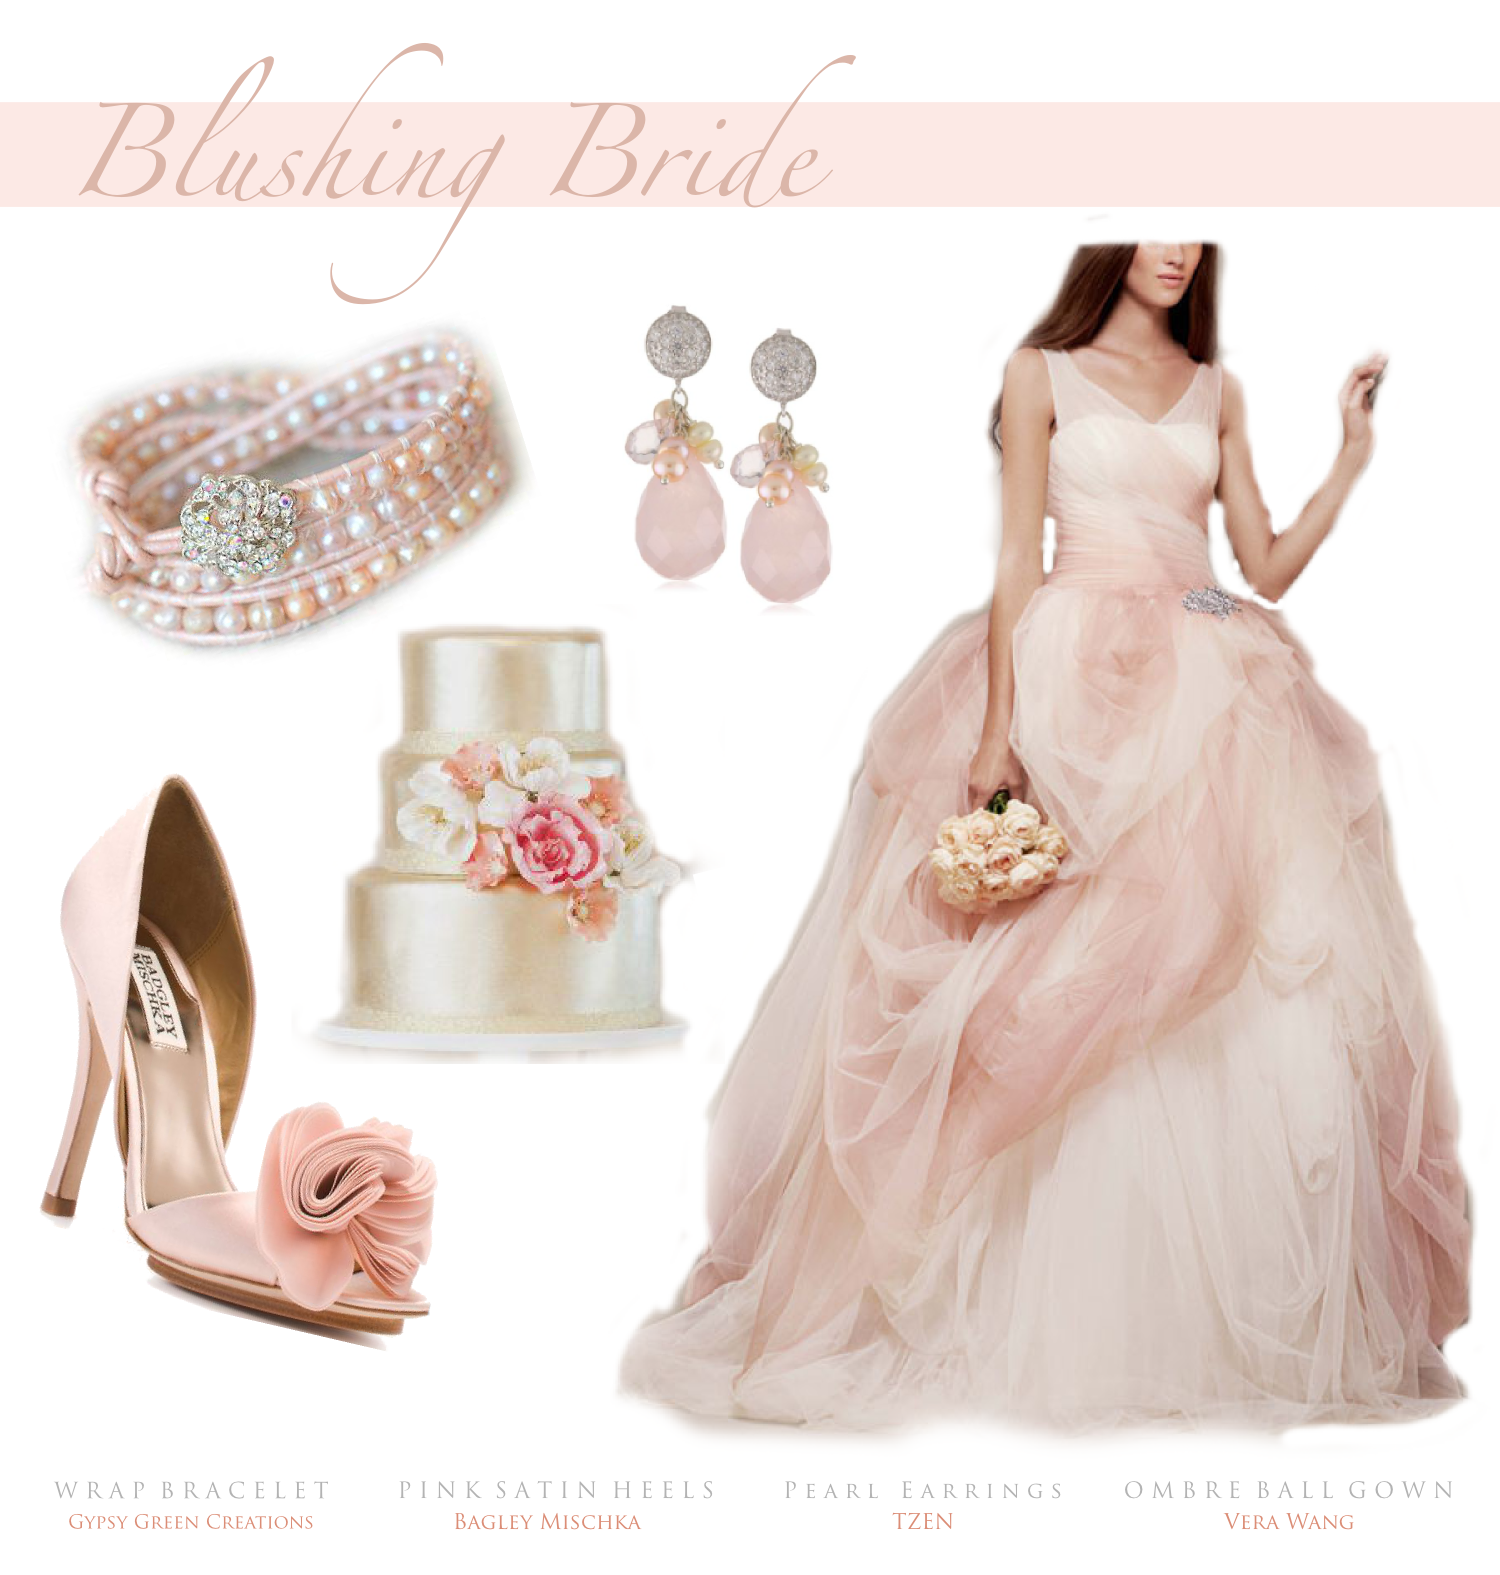 Blushing Bride Wedding Theme. Bracelet: https://www.etsy.com/listing ...